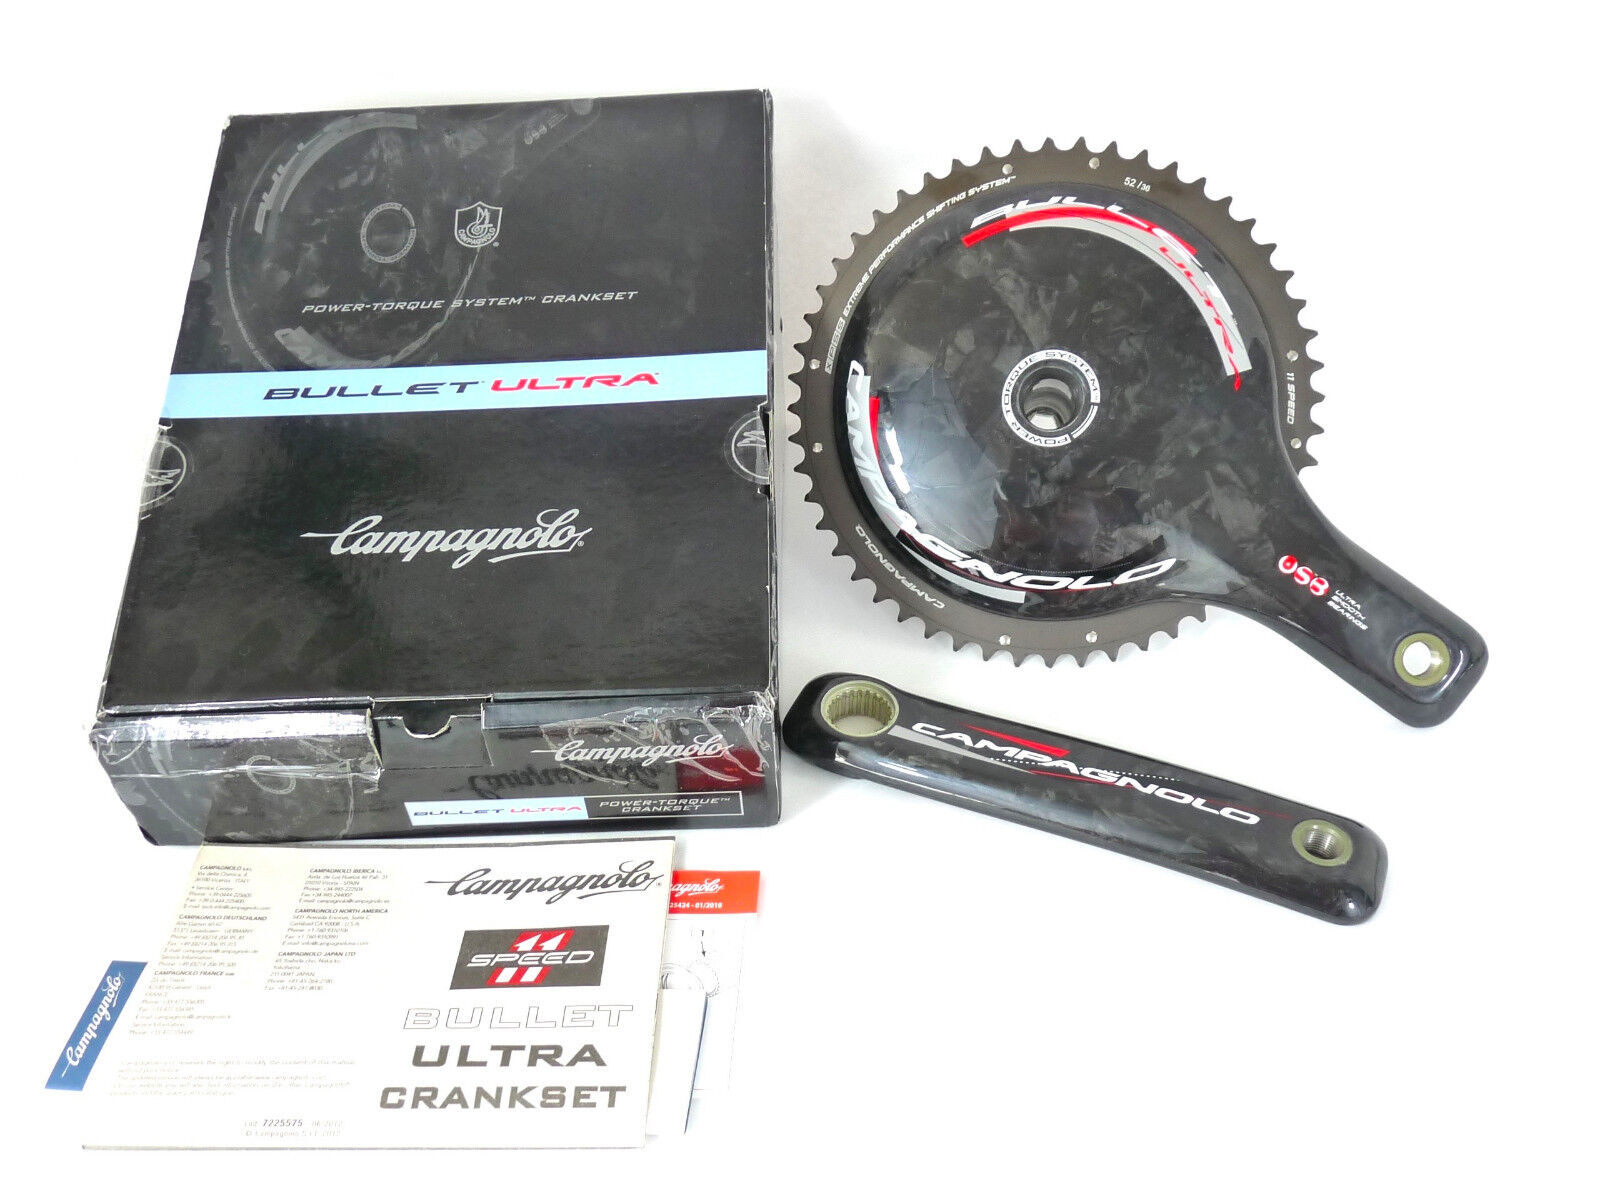 Campagnolo Bullet Crankset Carbon 11 Speed 170mm 52 36 CERAMIC  BEARING LAST NOS  be in great demand